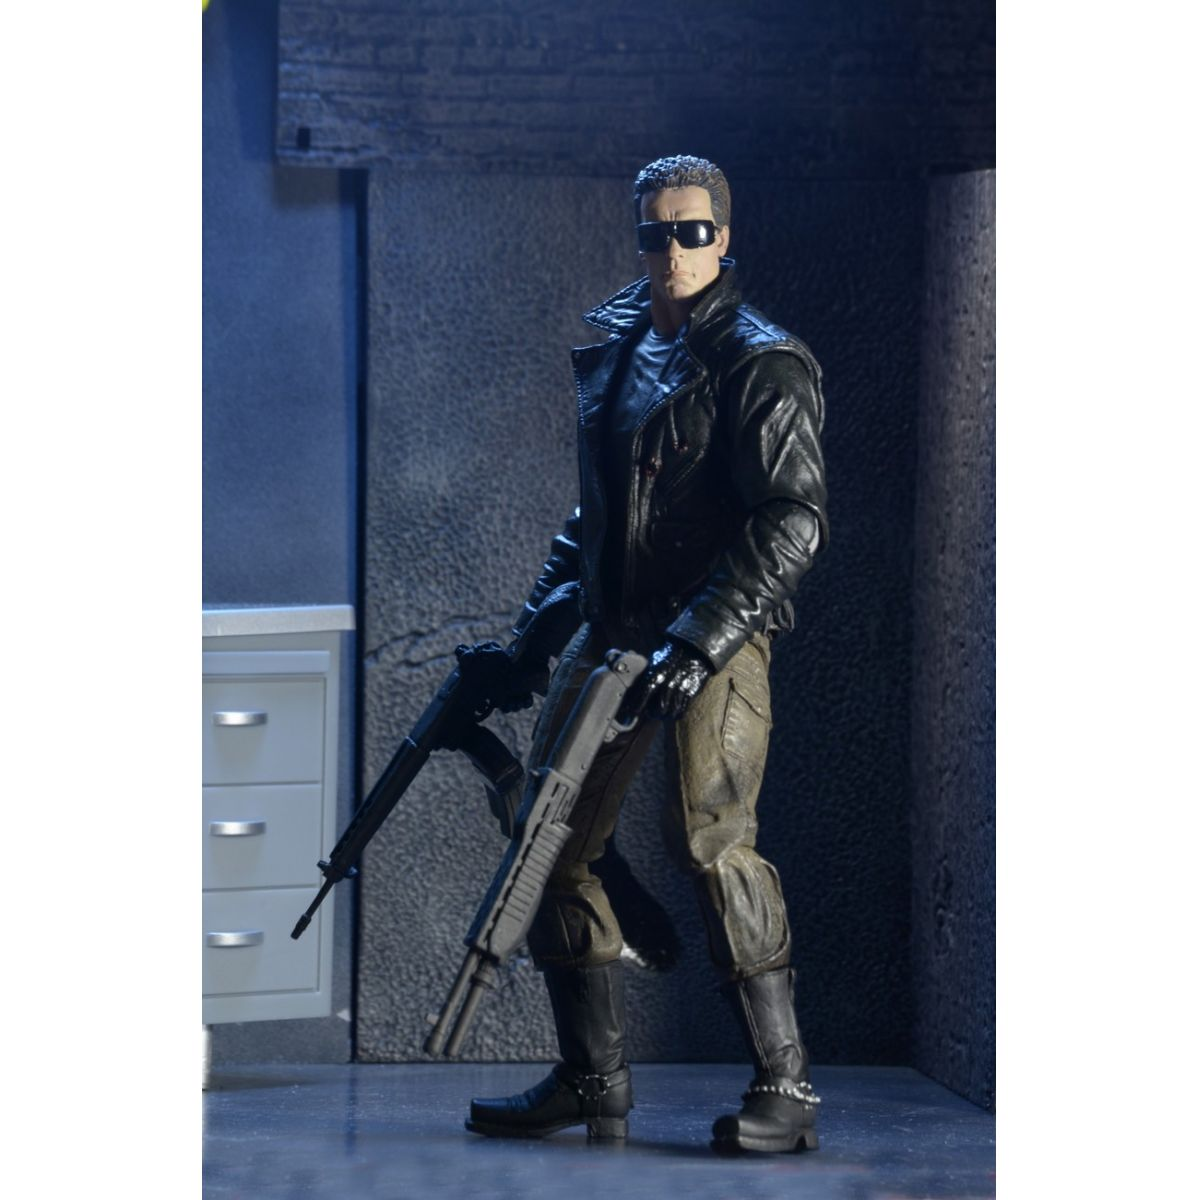 Exterminador do Futuro: Ultimate T-800 (Police Station Assault) - Neca